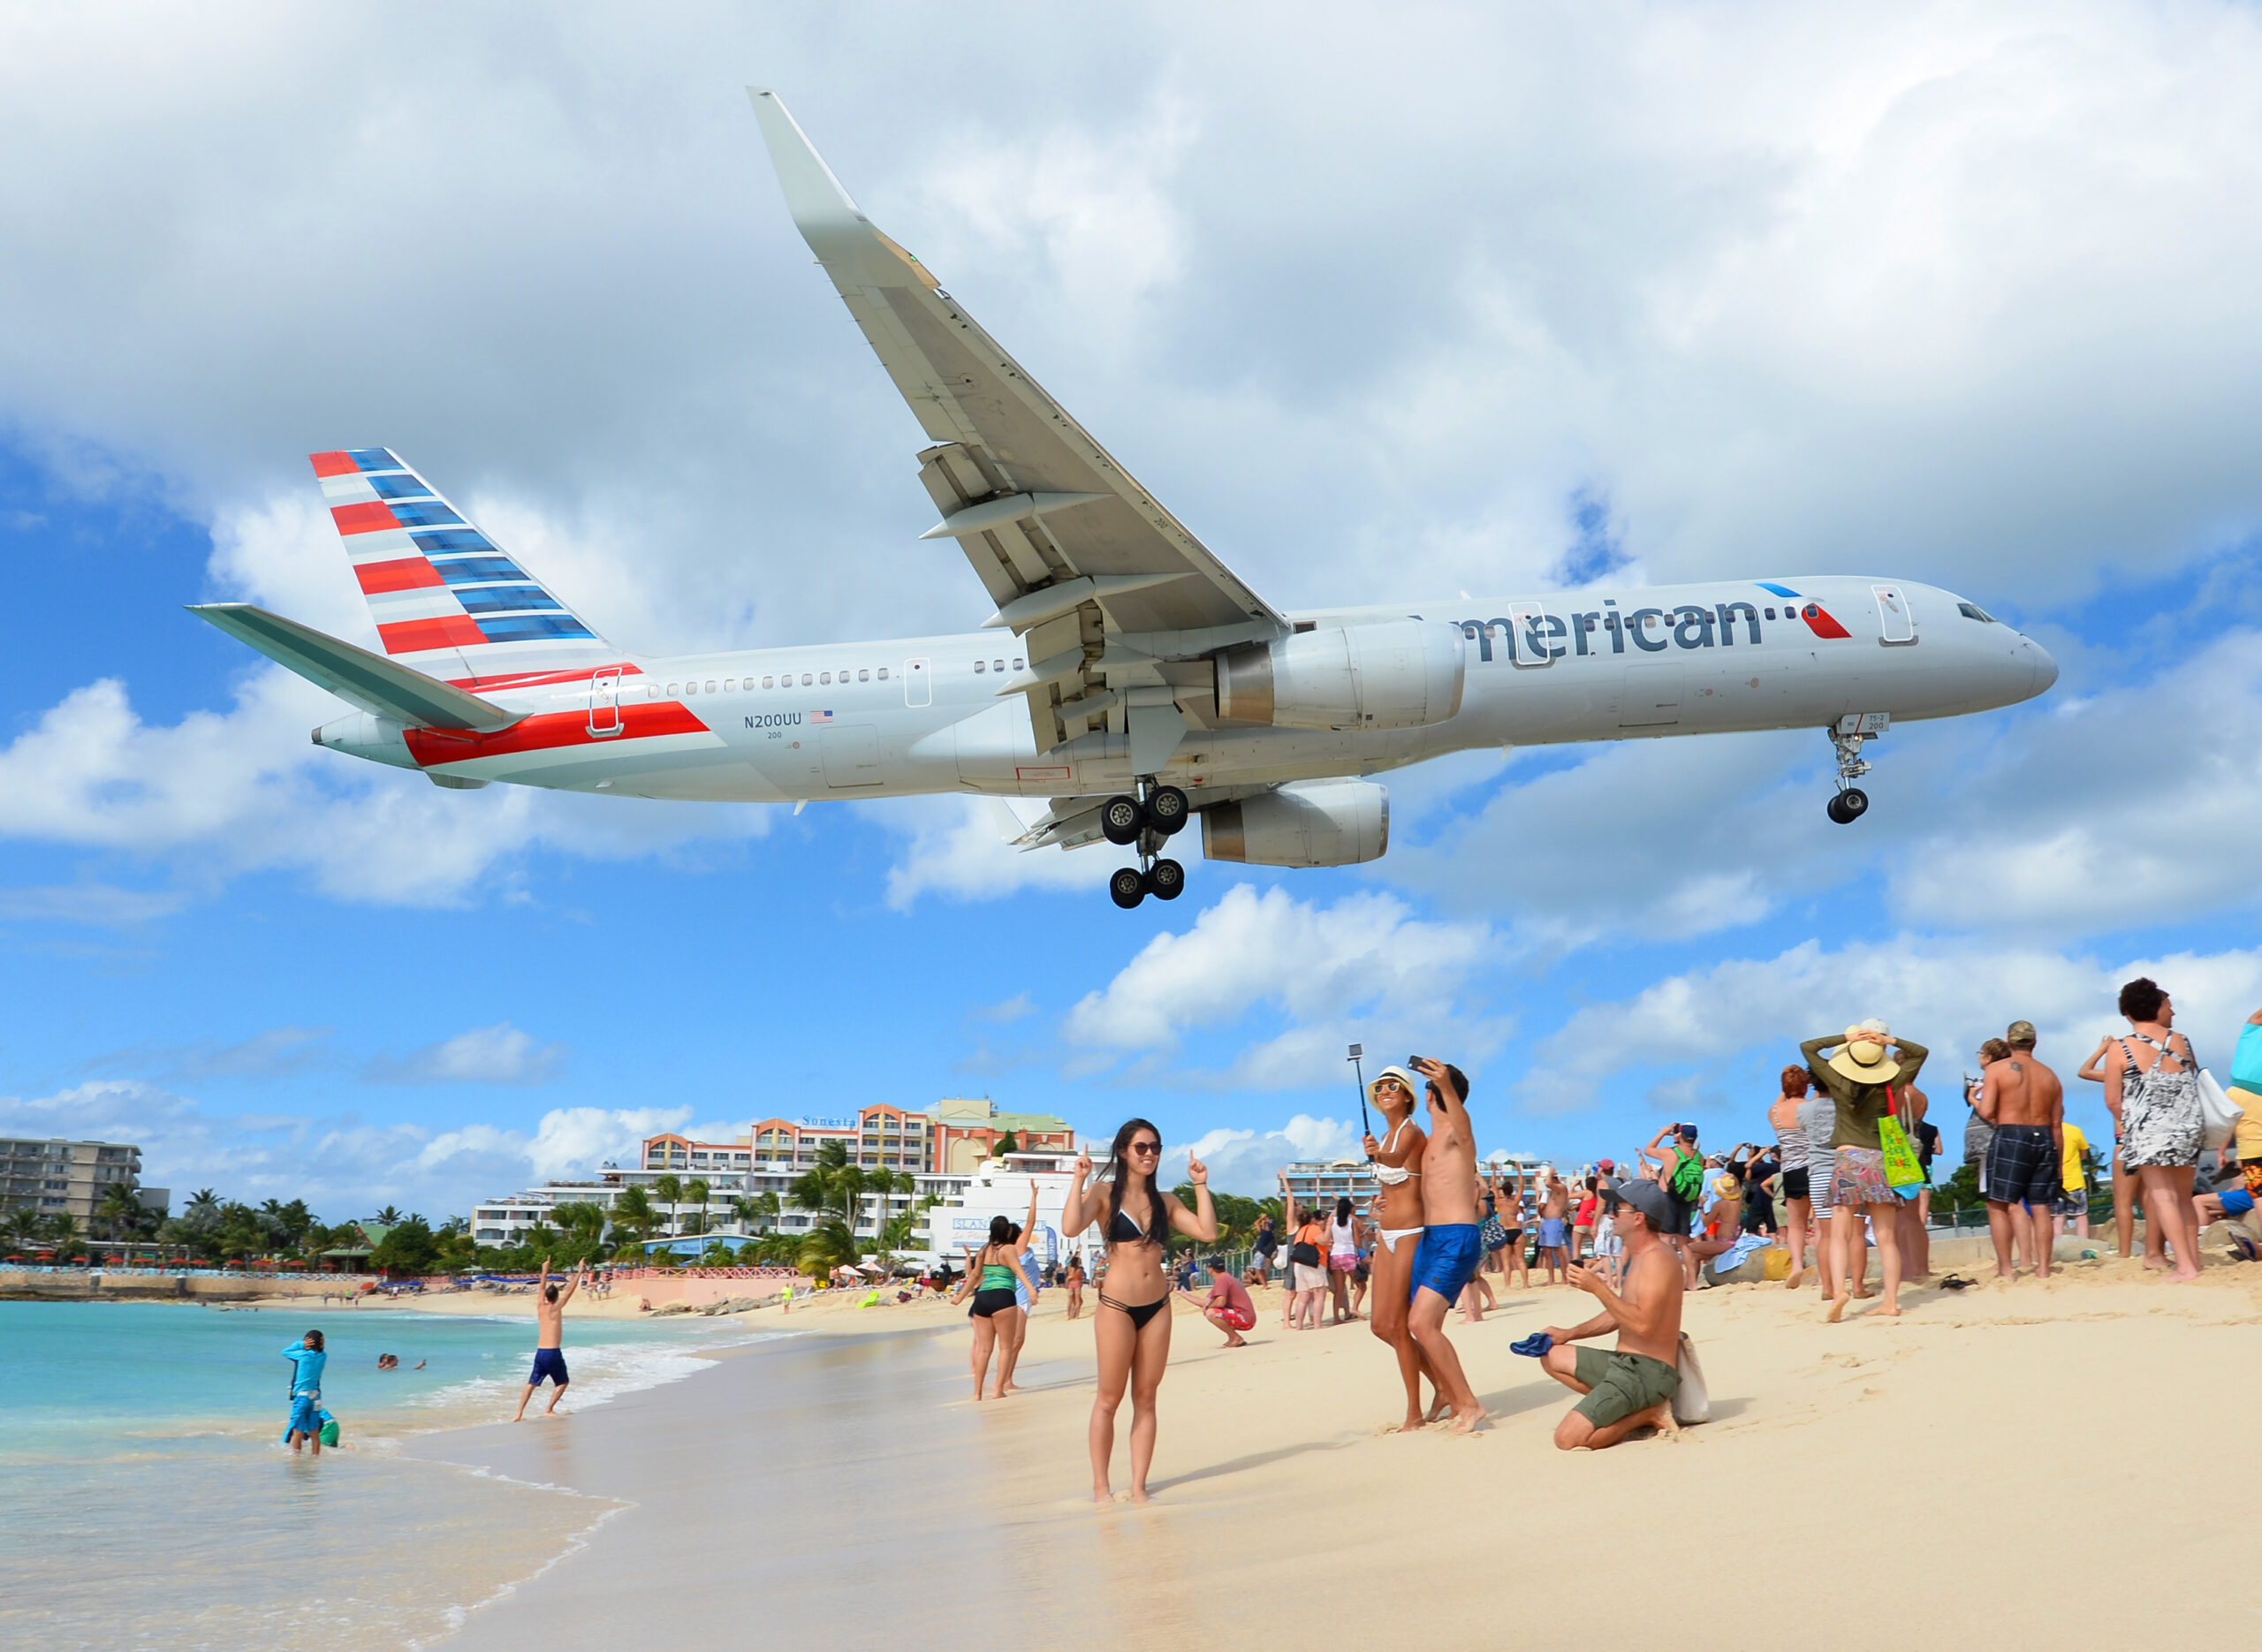 American Airlines Boeing 757 passing over Maho Beach